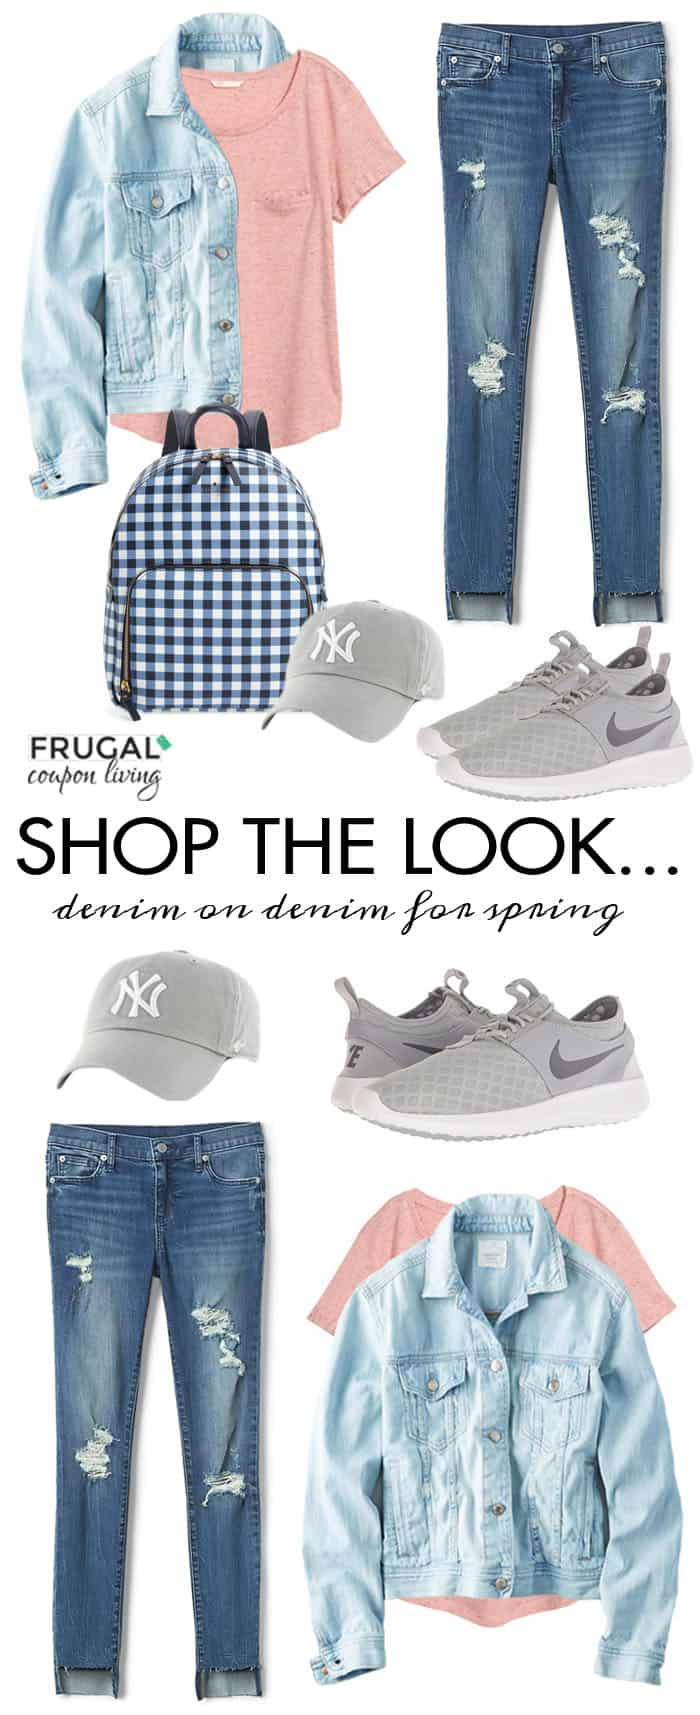 It's anotherFrugal Fashion Friday. This week we focus on a Denim on Denim Outfit for the Spring. Jean jacket, distressed jeans and more! #FrugalCouponLiving #FrugalFashionFriday #springfashion #fashion #ootd #outfit #springootd #denimoutfit #denim #streetstyle